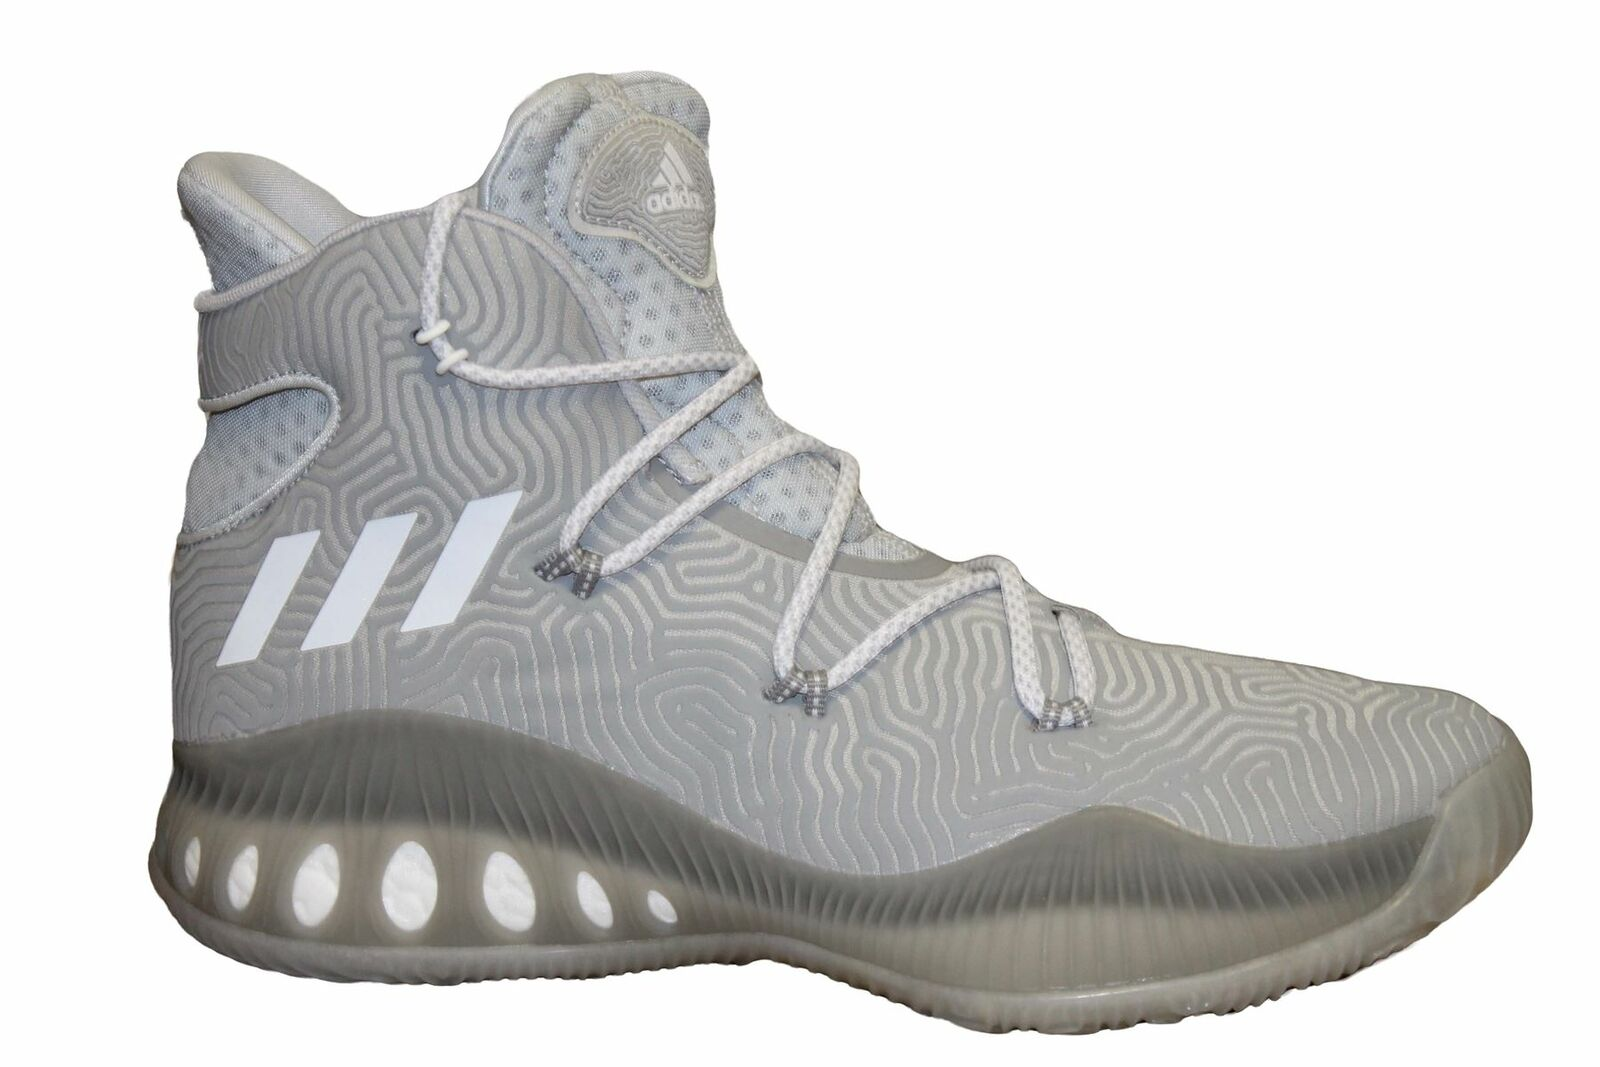 Adidas Crazy Explosive BW0568 Mens Basketball BootsUK Sizes 9 to 19RRP 99.99